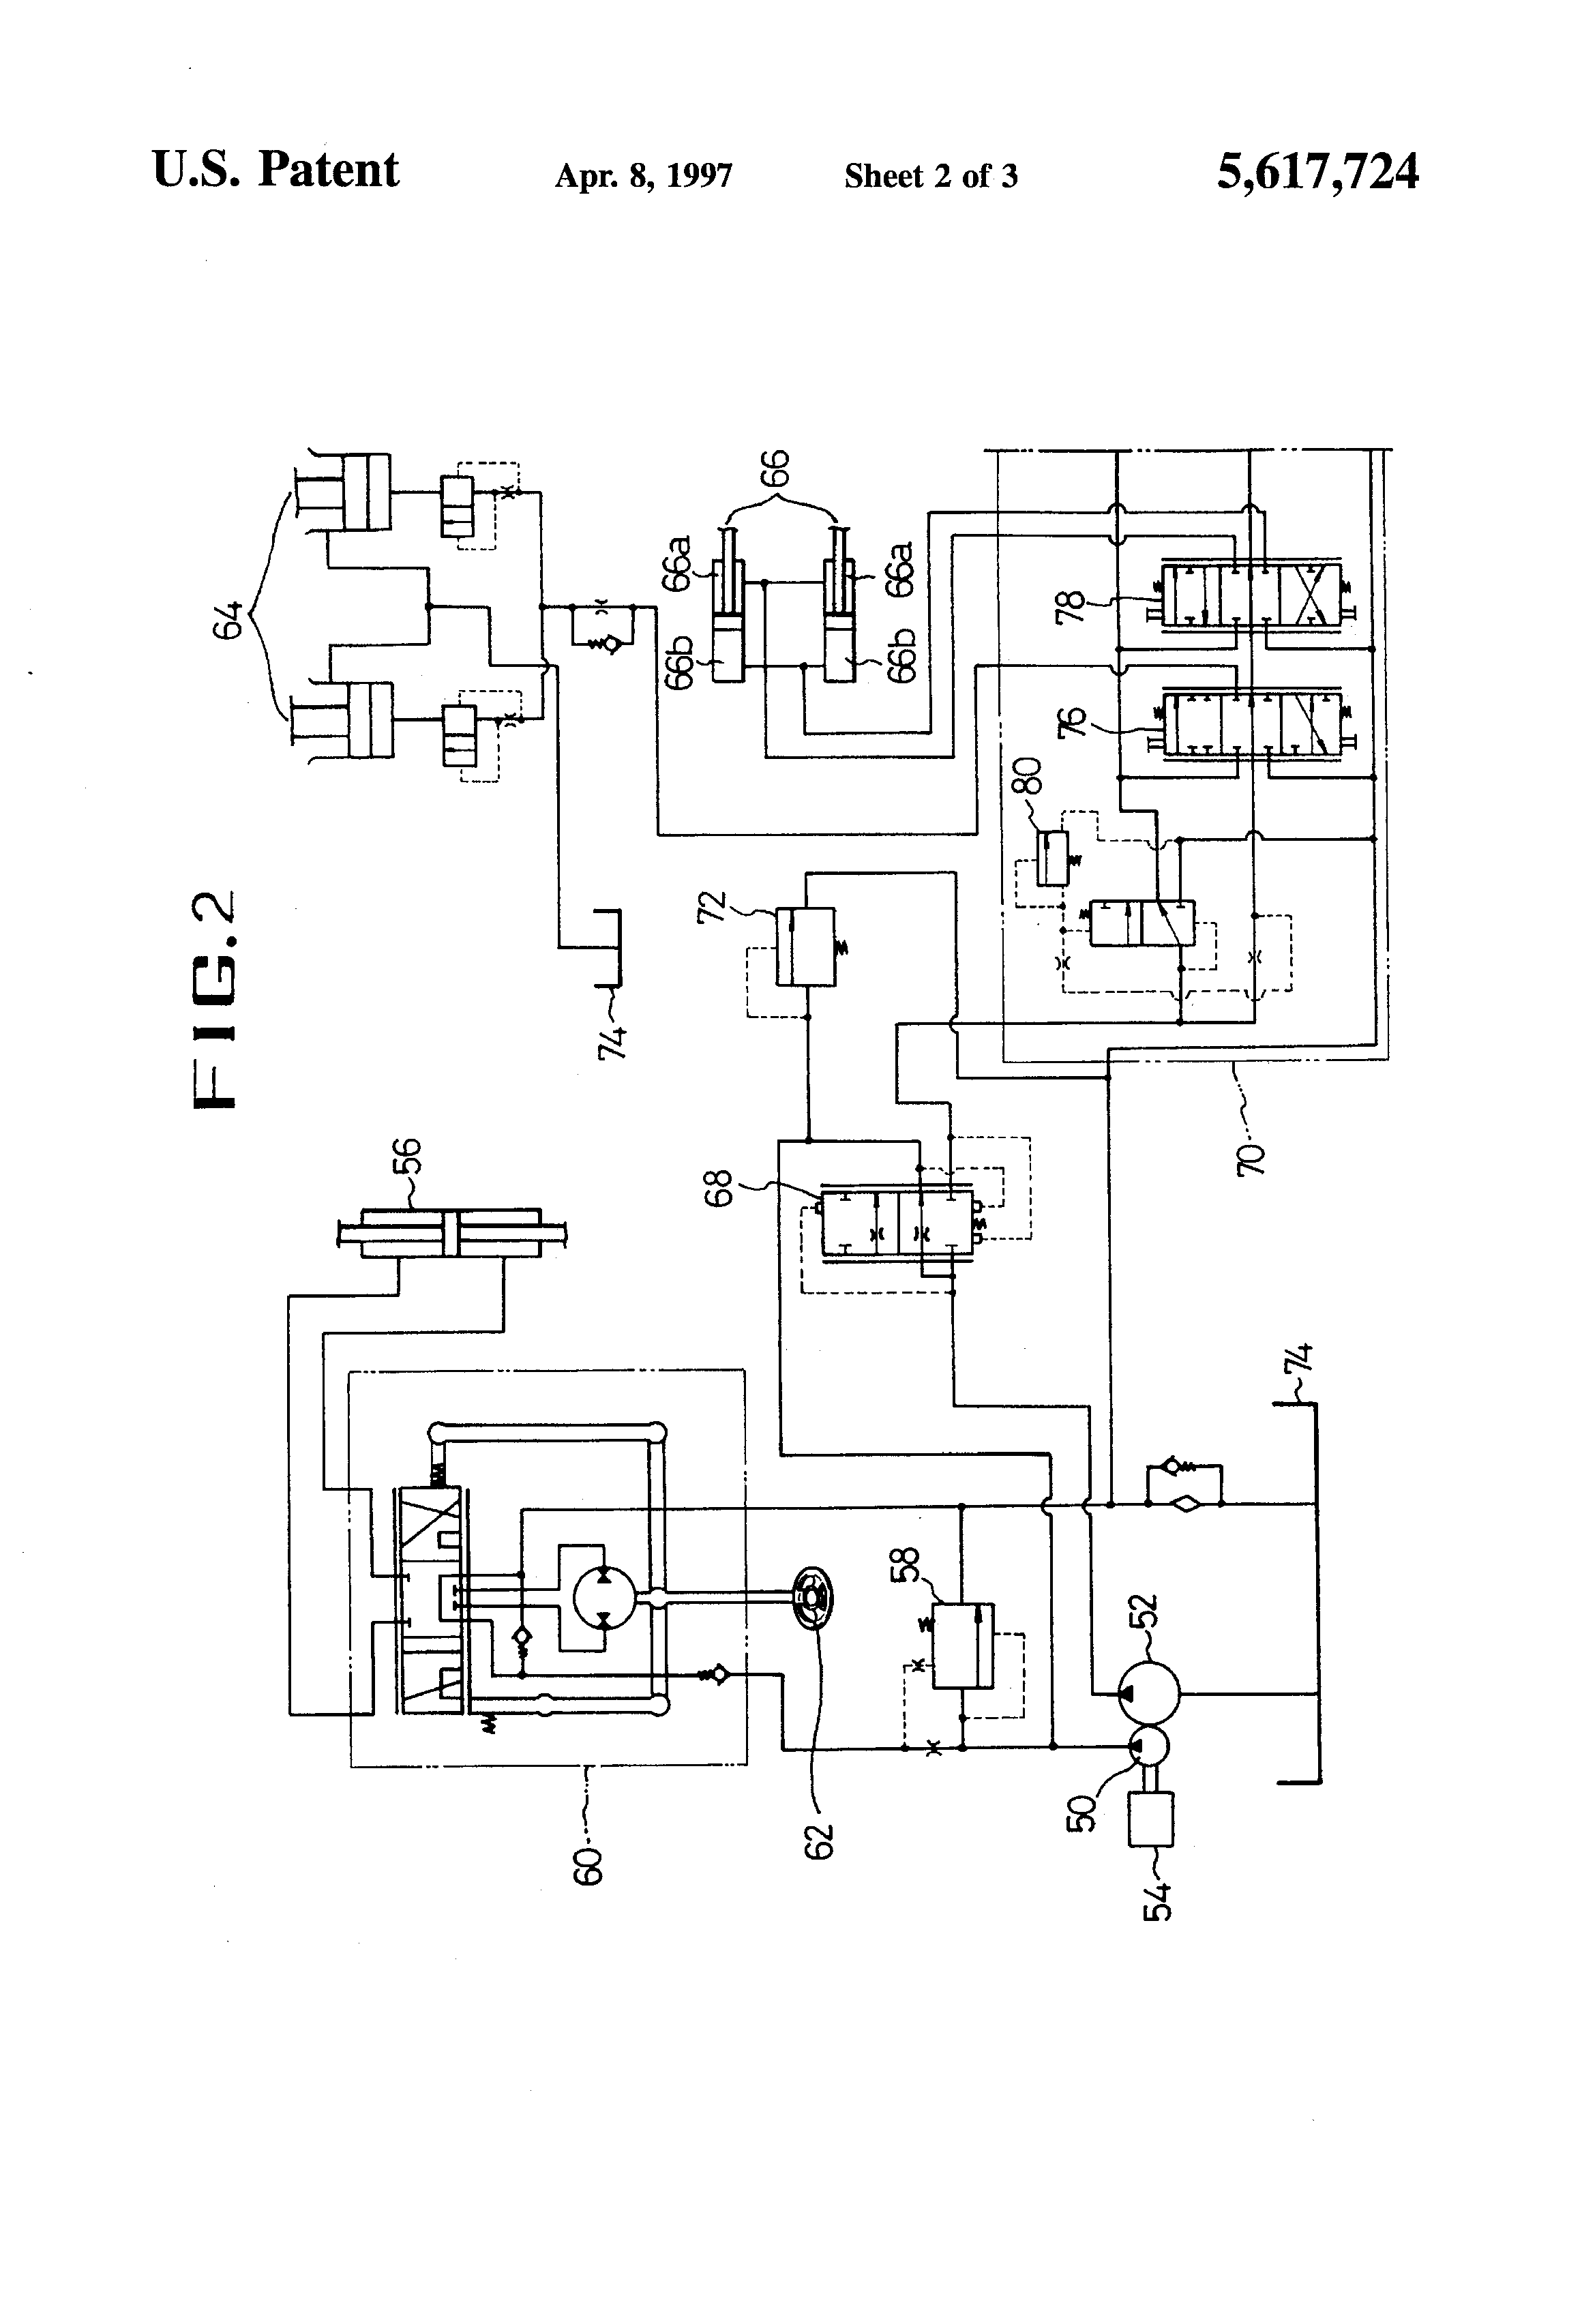 wiring diagram hydraulic clark forklift epc4you toggle switch wiring diagram hydraulic patent us5617724 - hydraulic control system for use in a ...